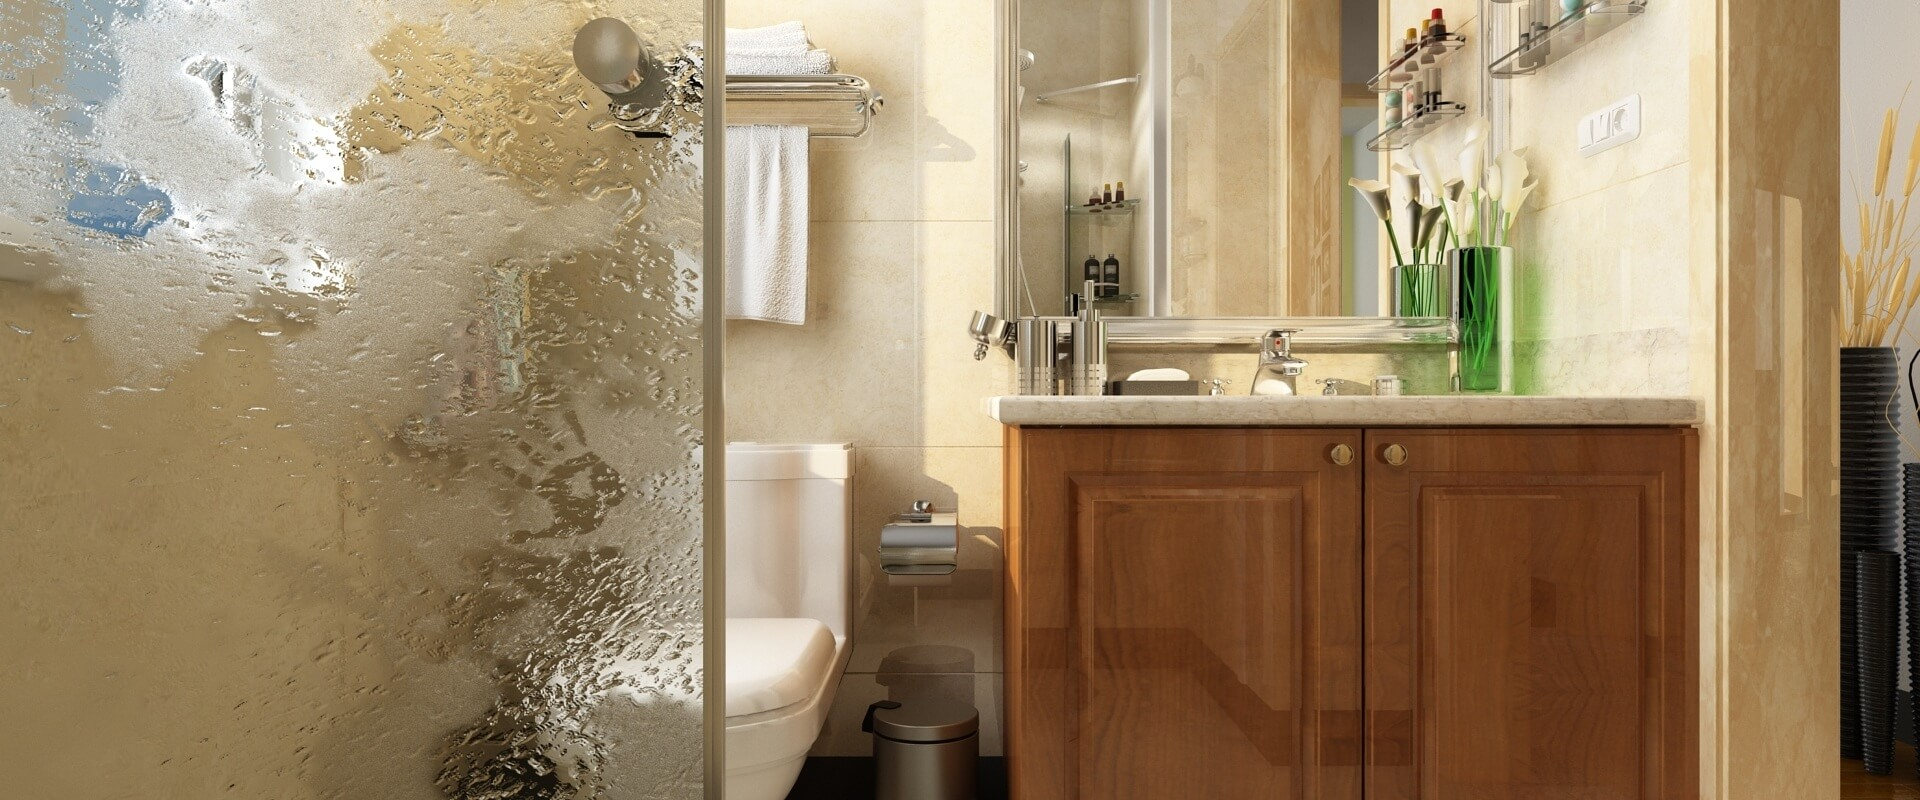 The key elements of a perfect master bathroom interior for Perfect master bathroom